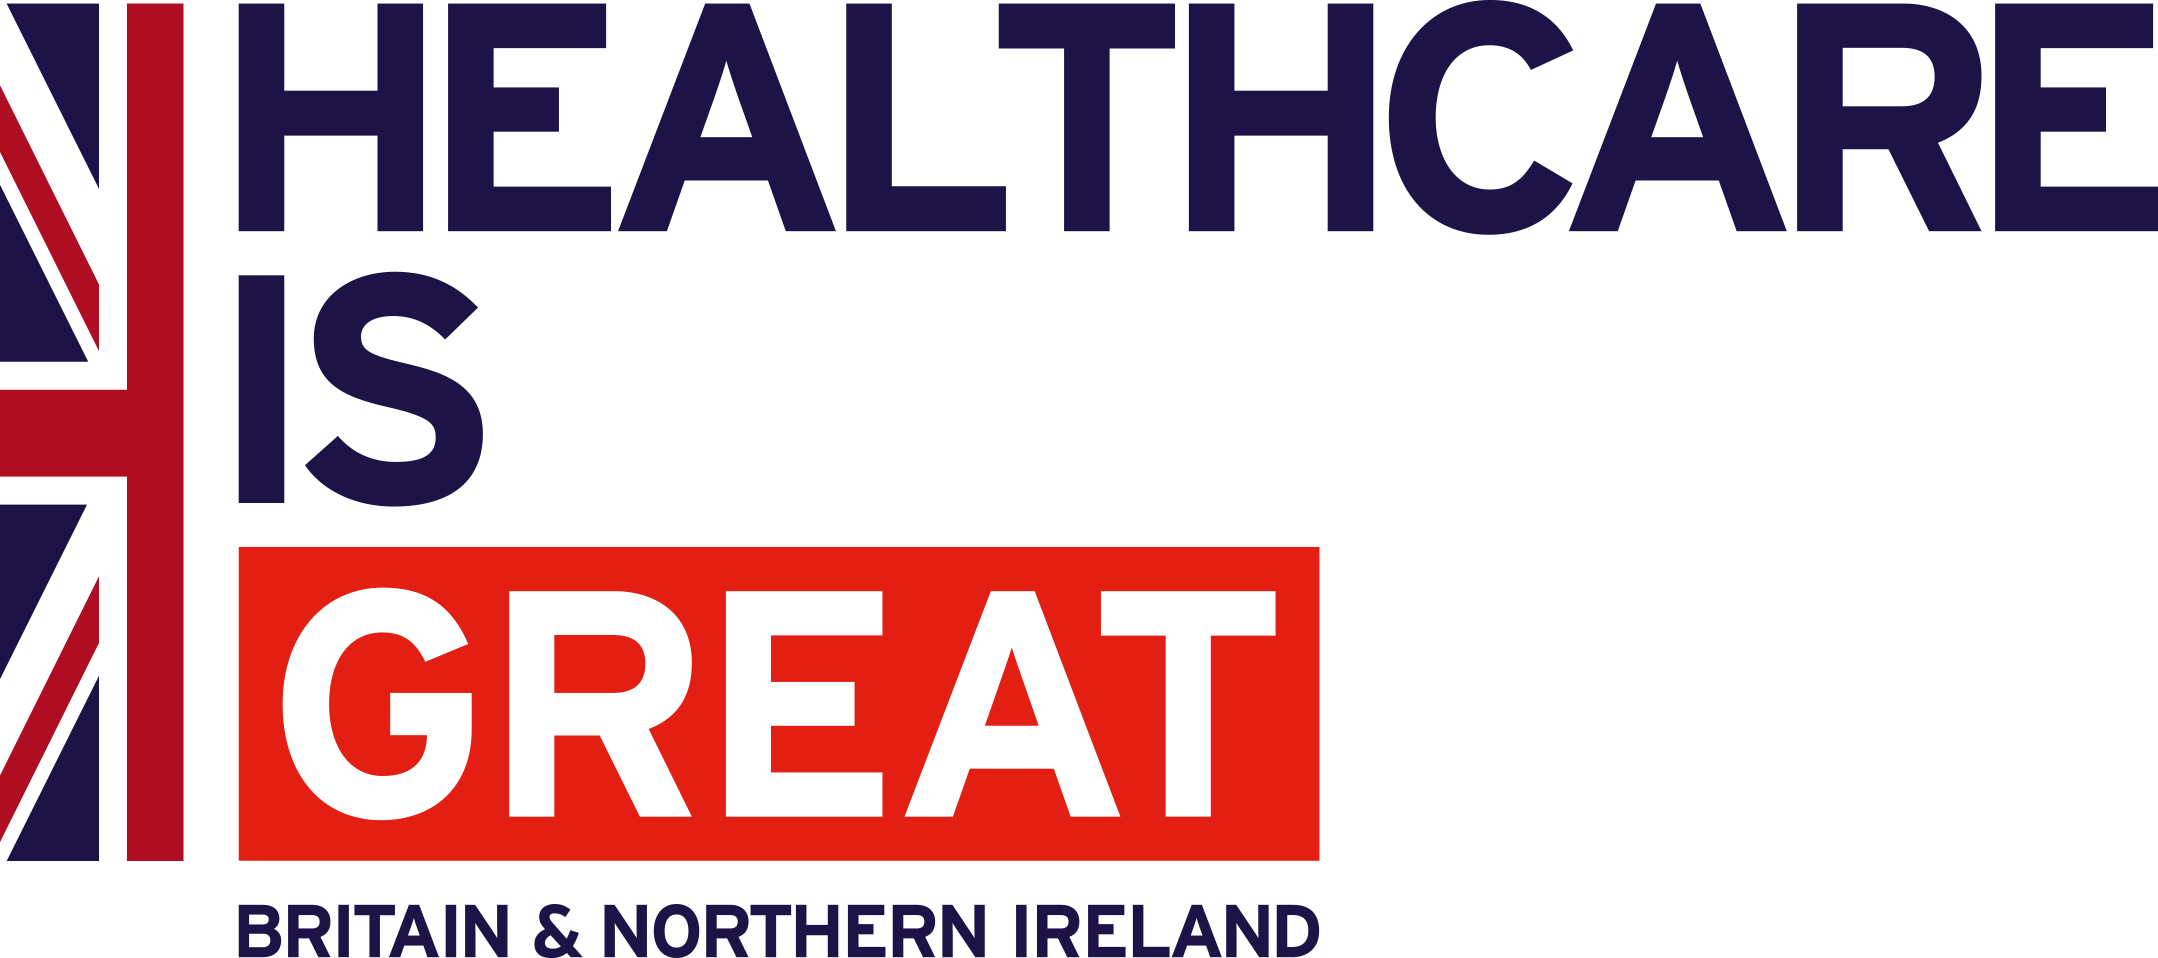 Healthcare-is-GREAT-logo